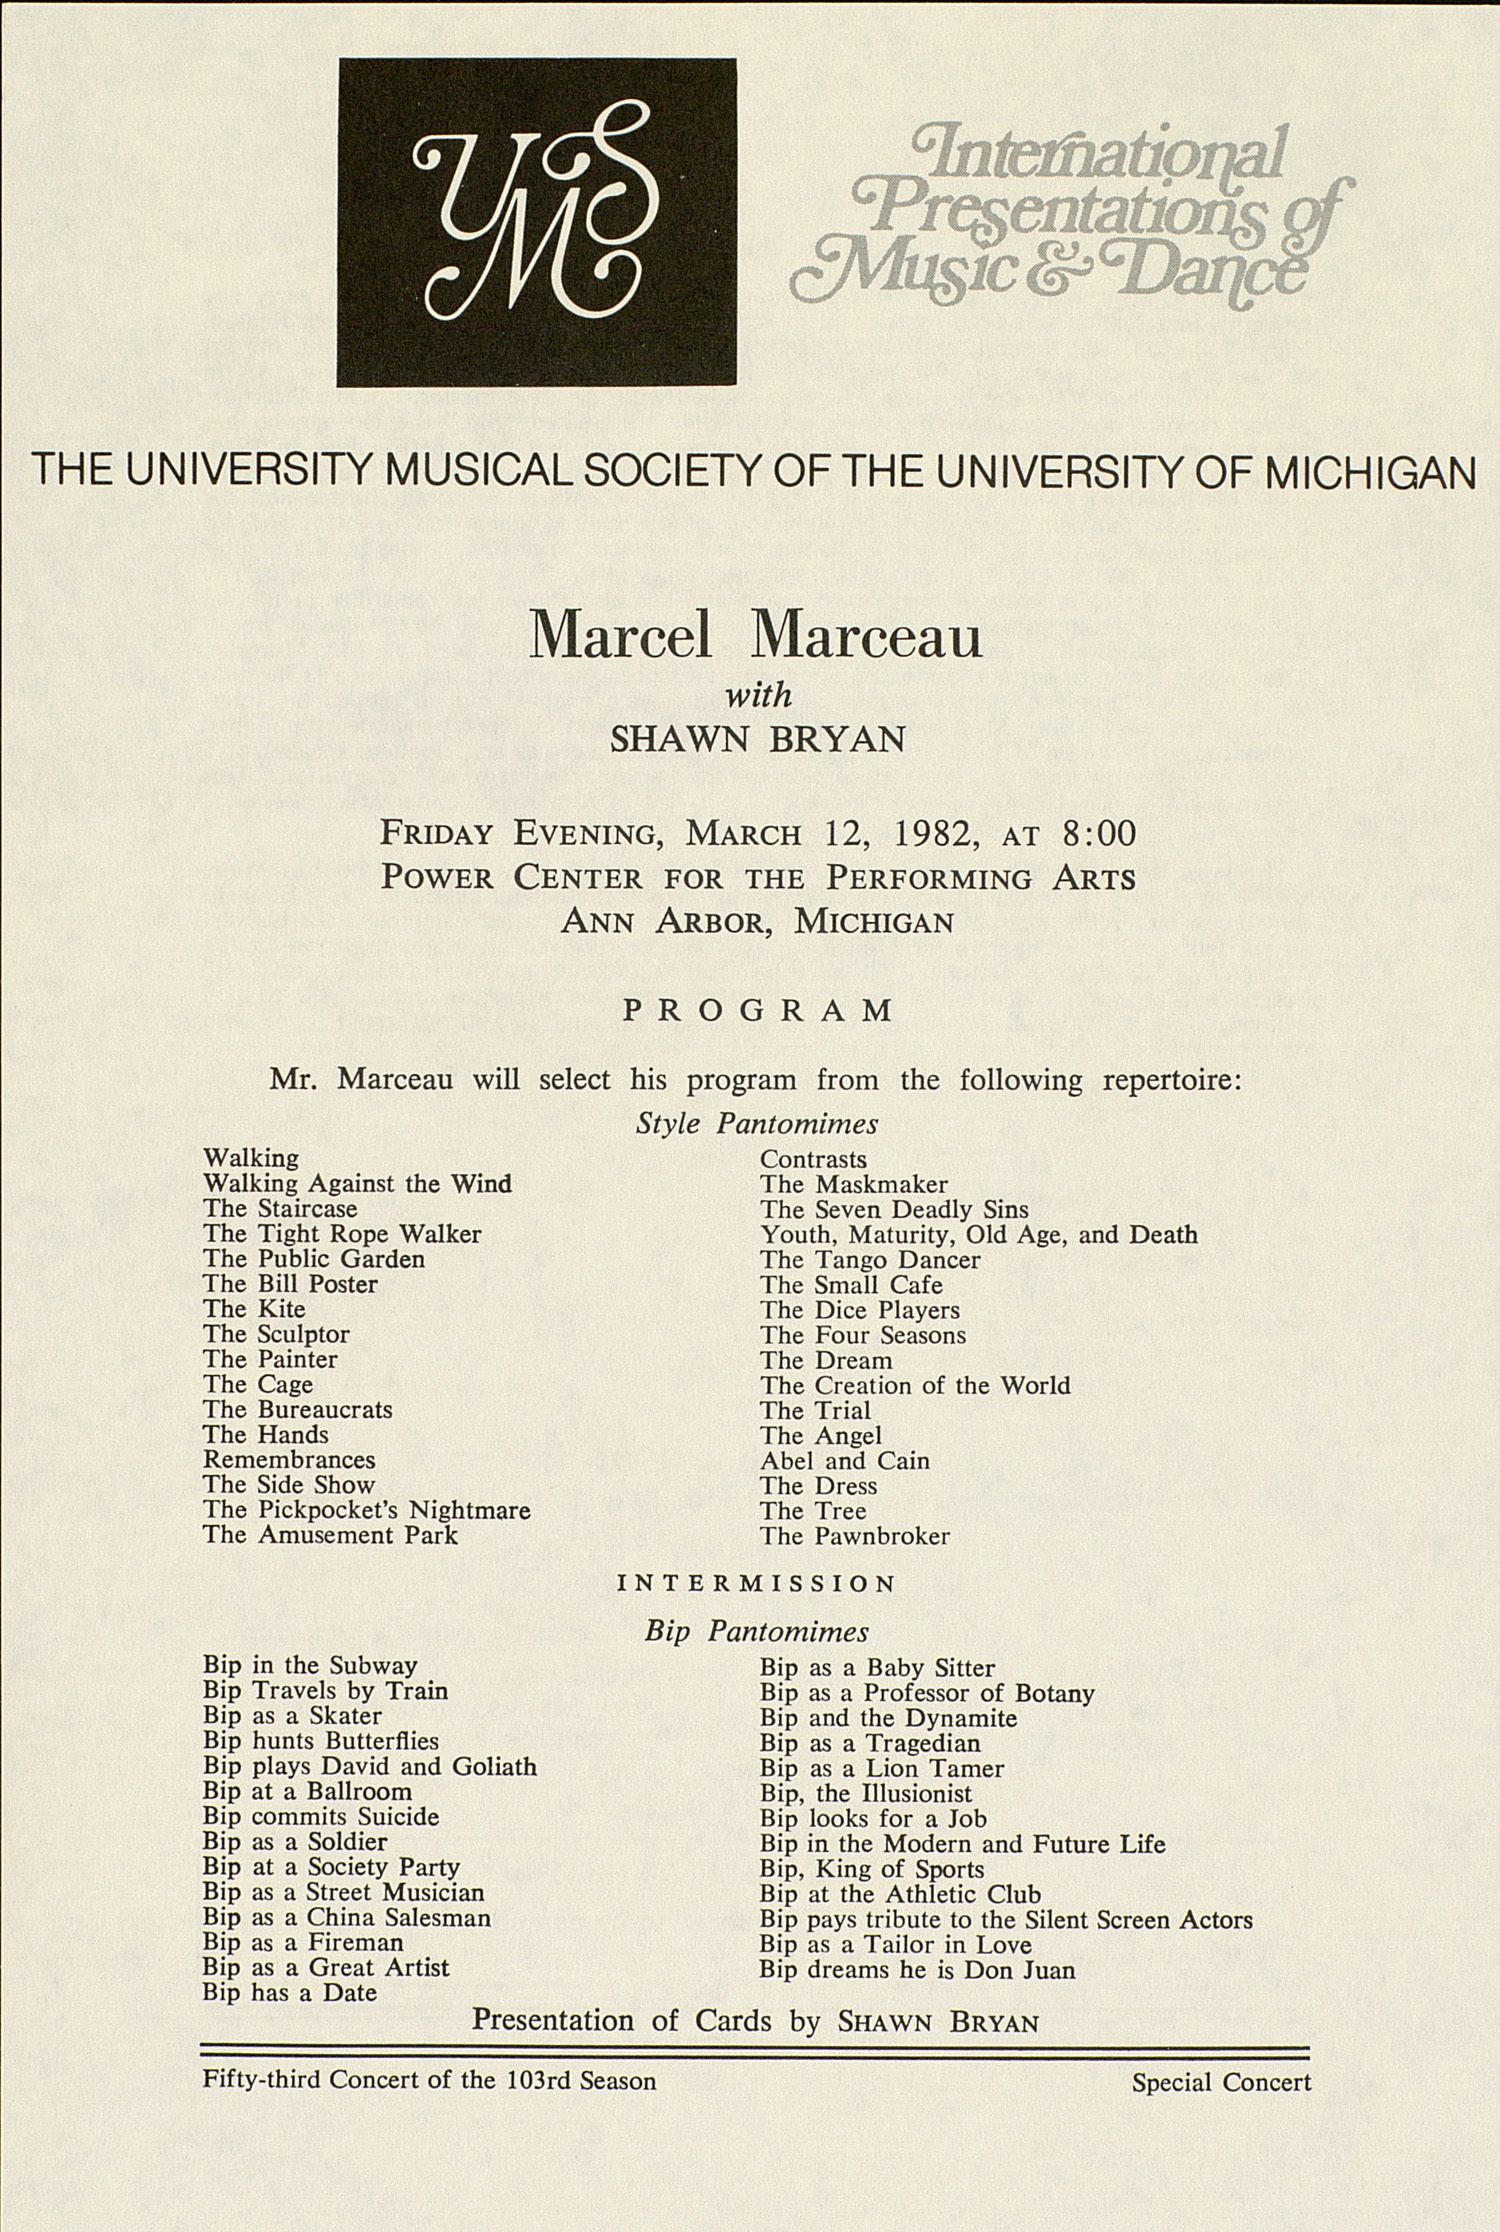 UMS Concert Program, March 12, 1982: International Presentations Of Music & Dance -- Marcel Marceau With Shawn Bryan image